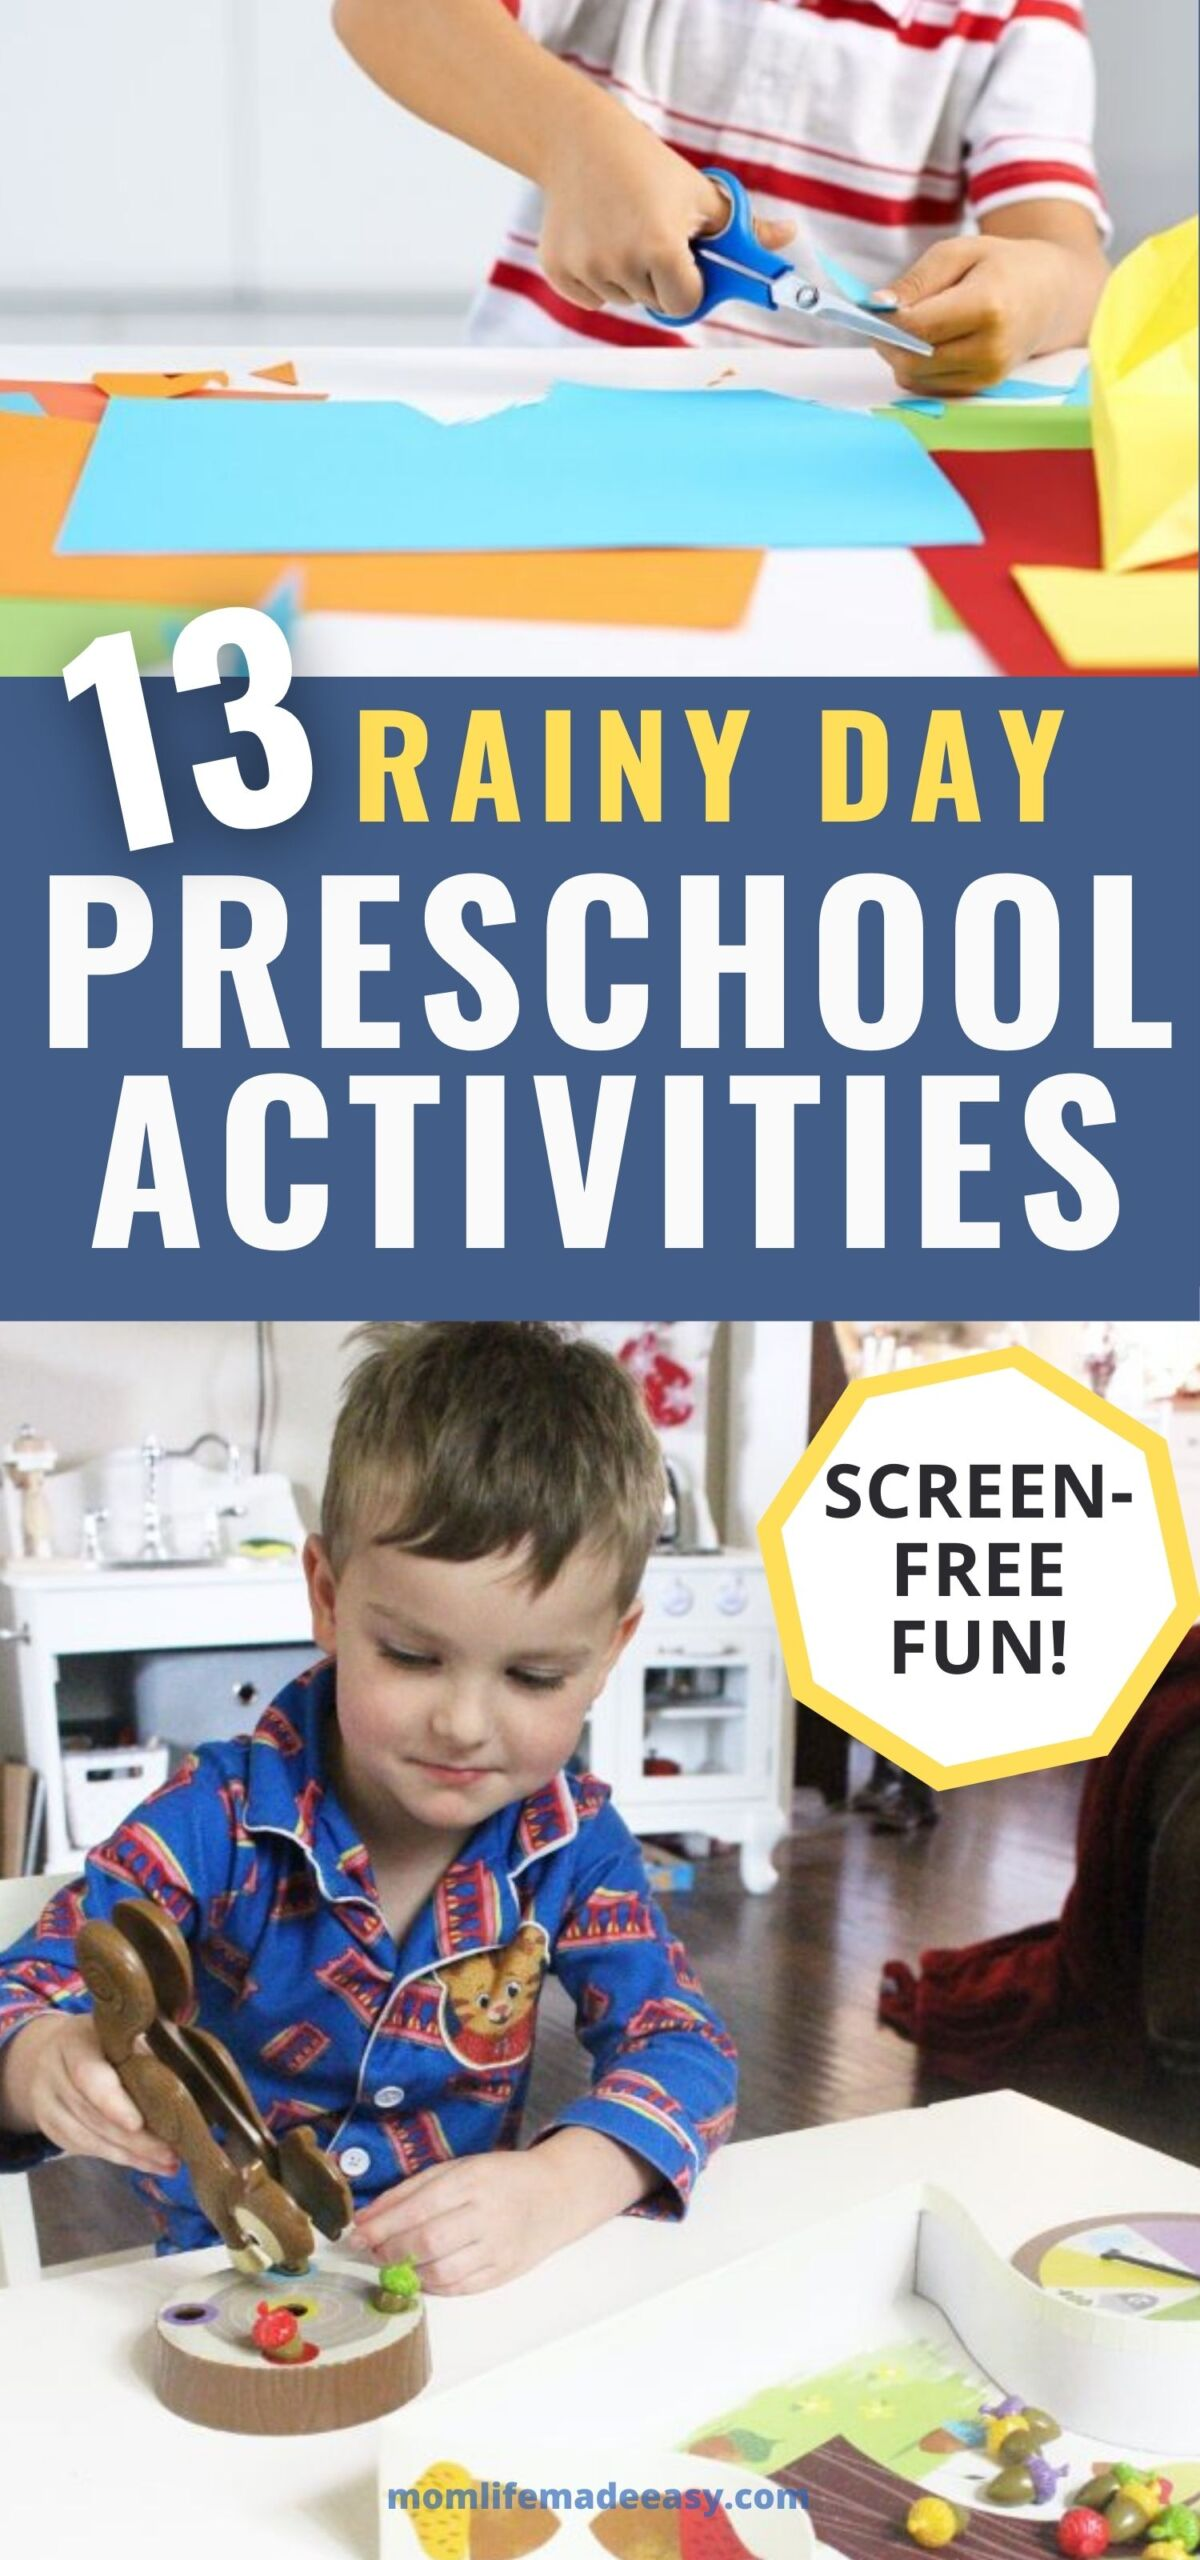 collage of preschool activities to do on a rainy day